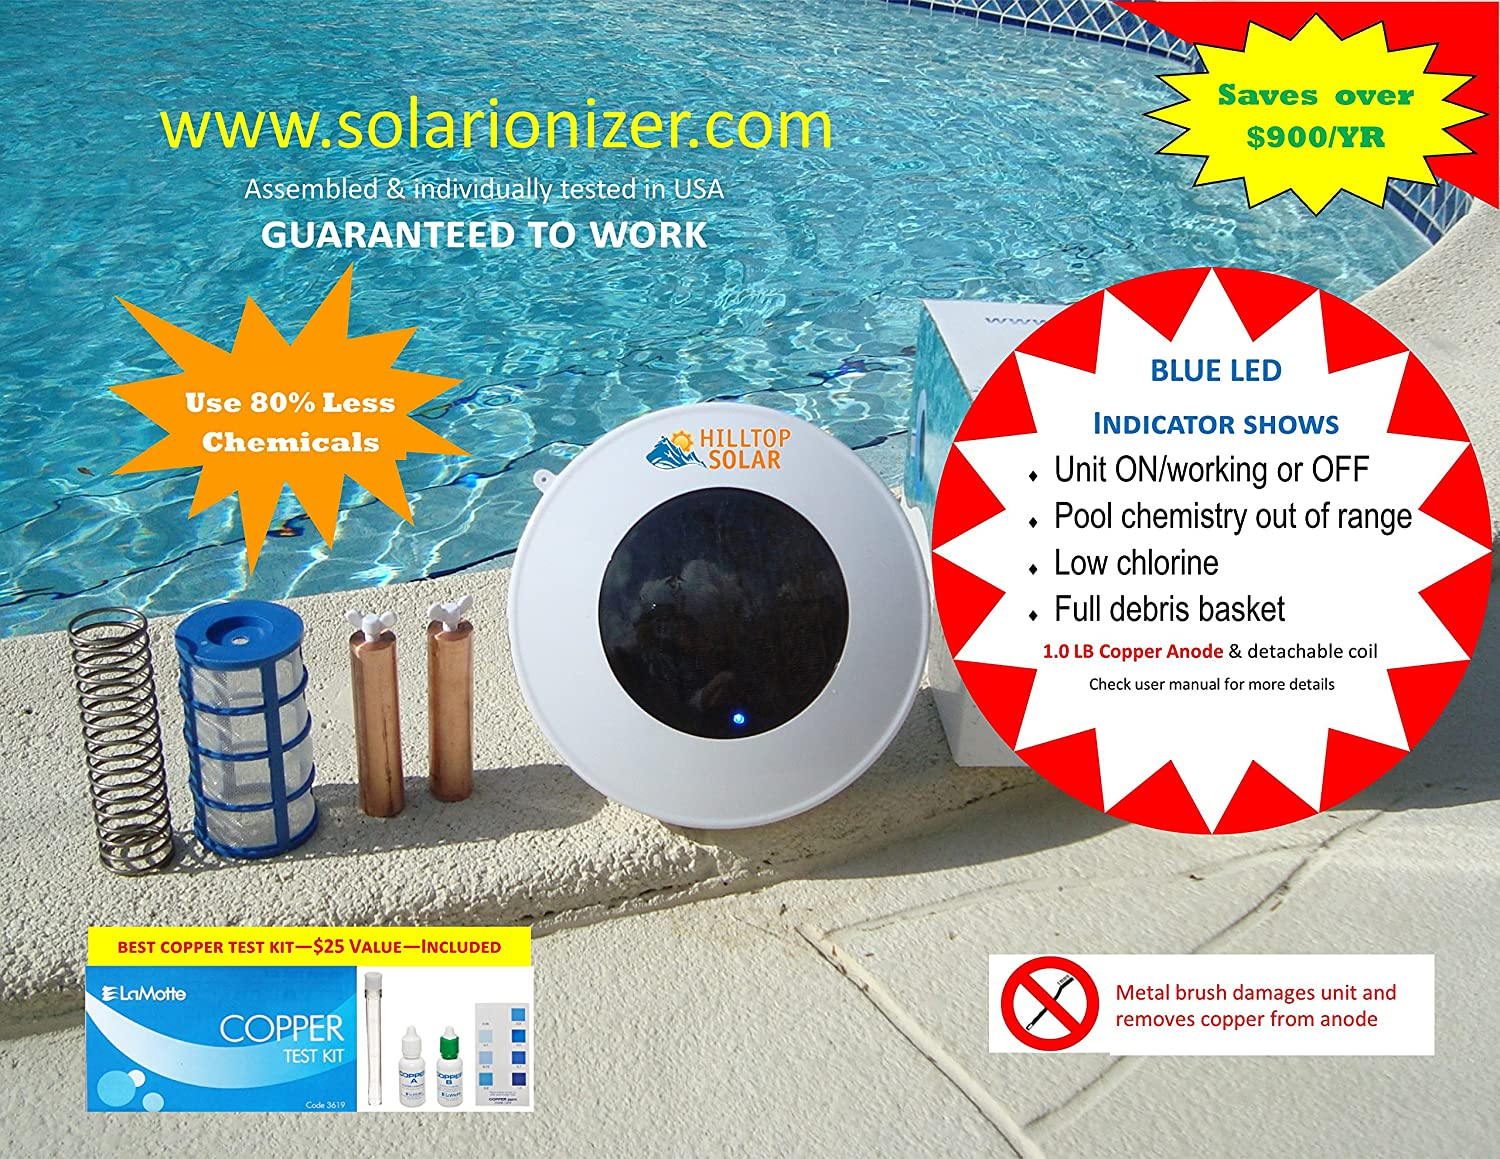 Solar pool/spa water purifier/ionizer with LED (Lights up if